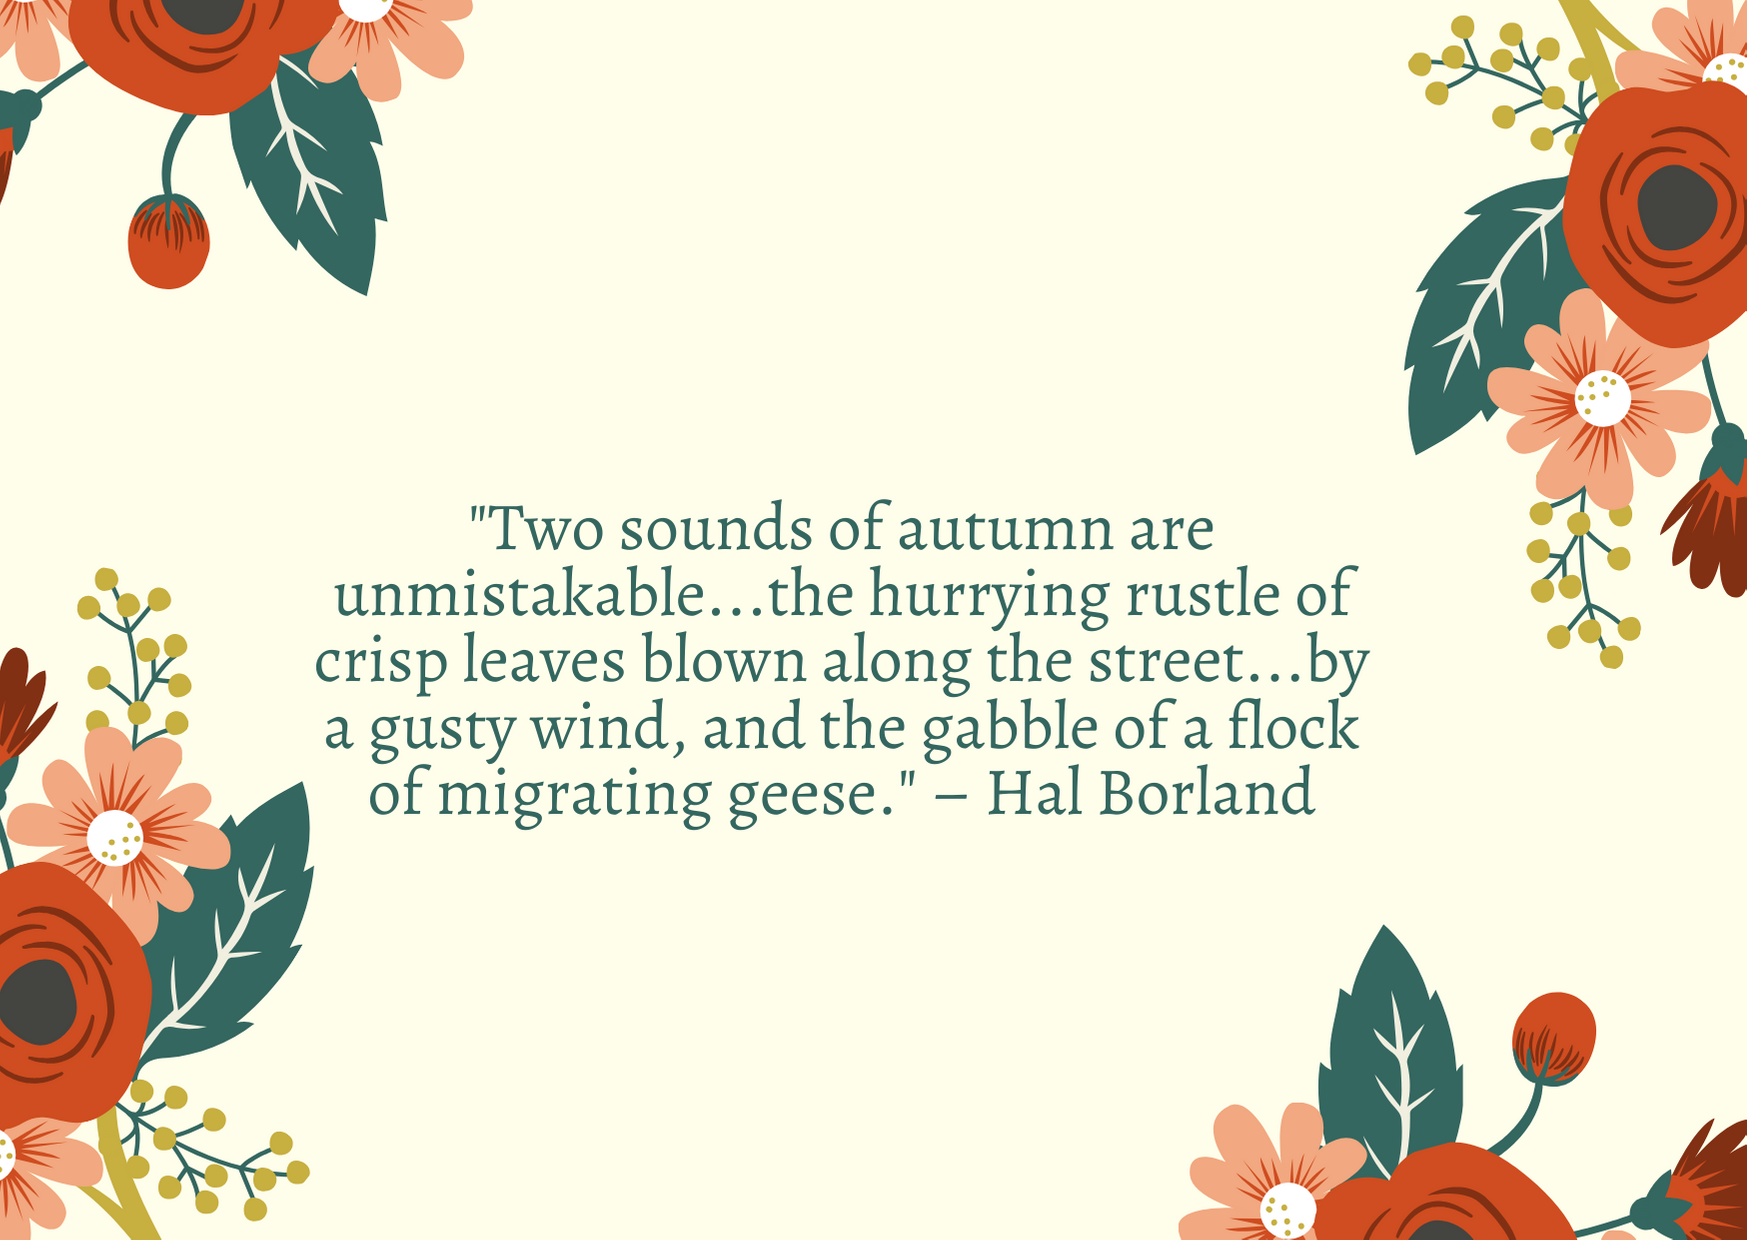 """Two sounds of autumn are unmistakable...the hurrying rustle of crisp leaves blown along the street...by a gusty wind, and the gabble of a flock of migrating geese."" – Hal Borland"